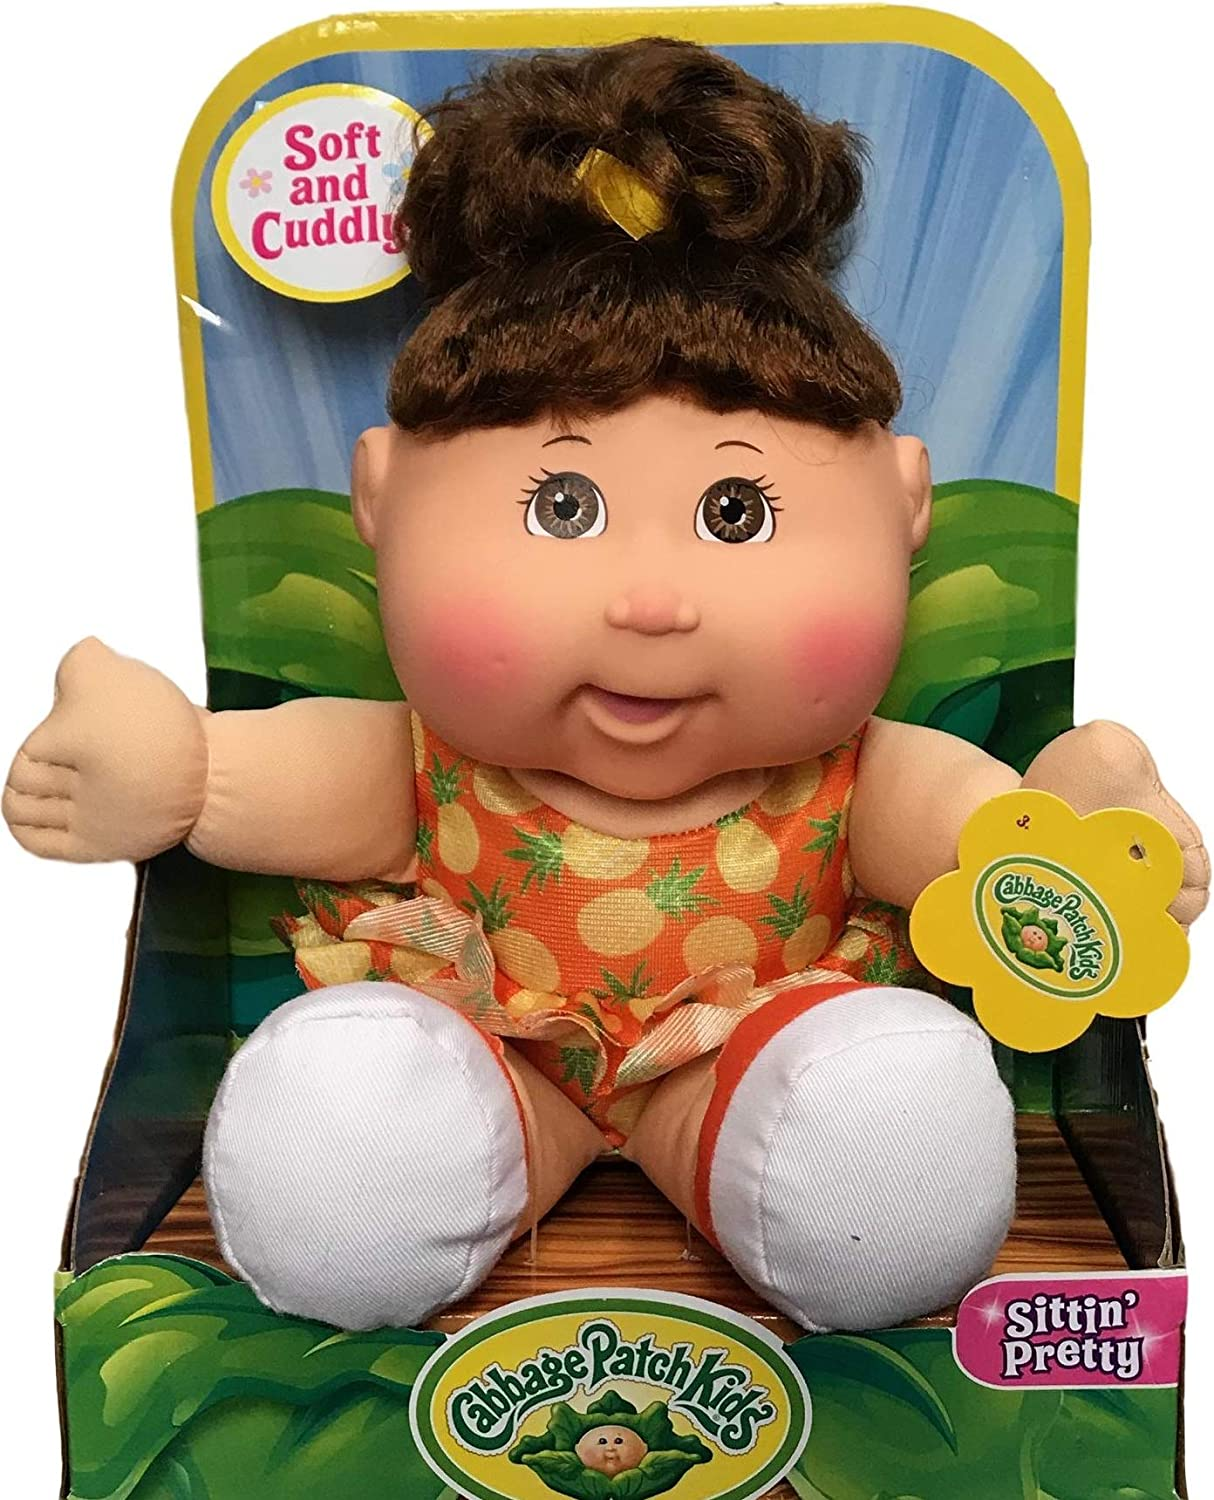 Brown Eyes//Pineapple Outfit Cabbage Patch Kids Sittin Pretty Soft /& Cuddly